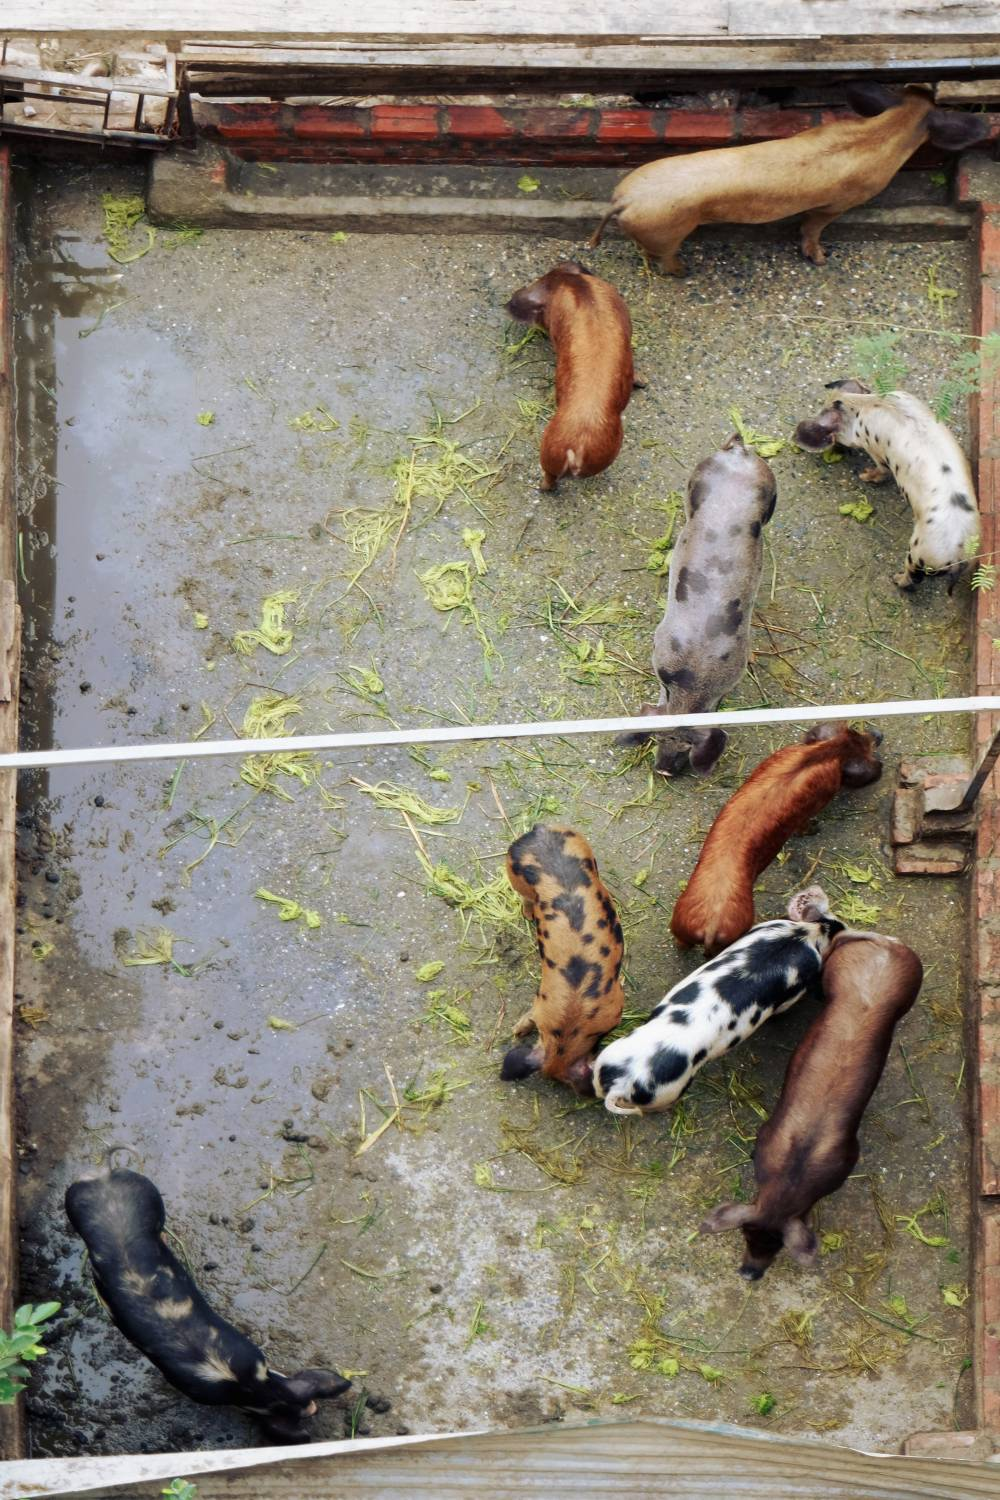 pig leather livestock farming pollution